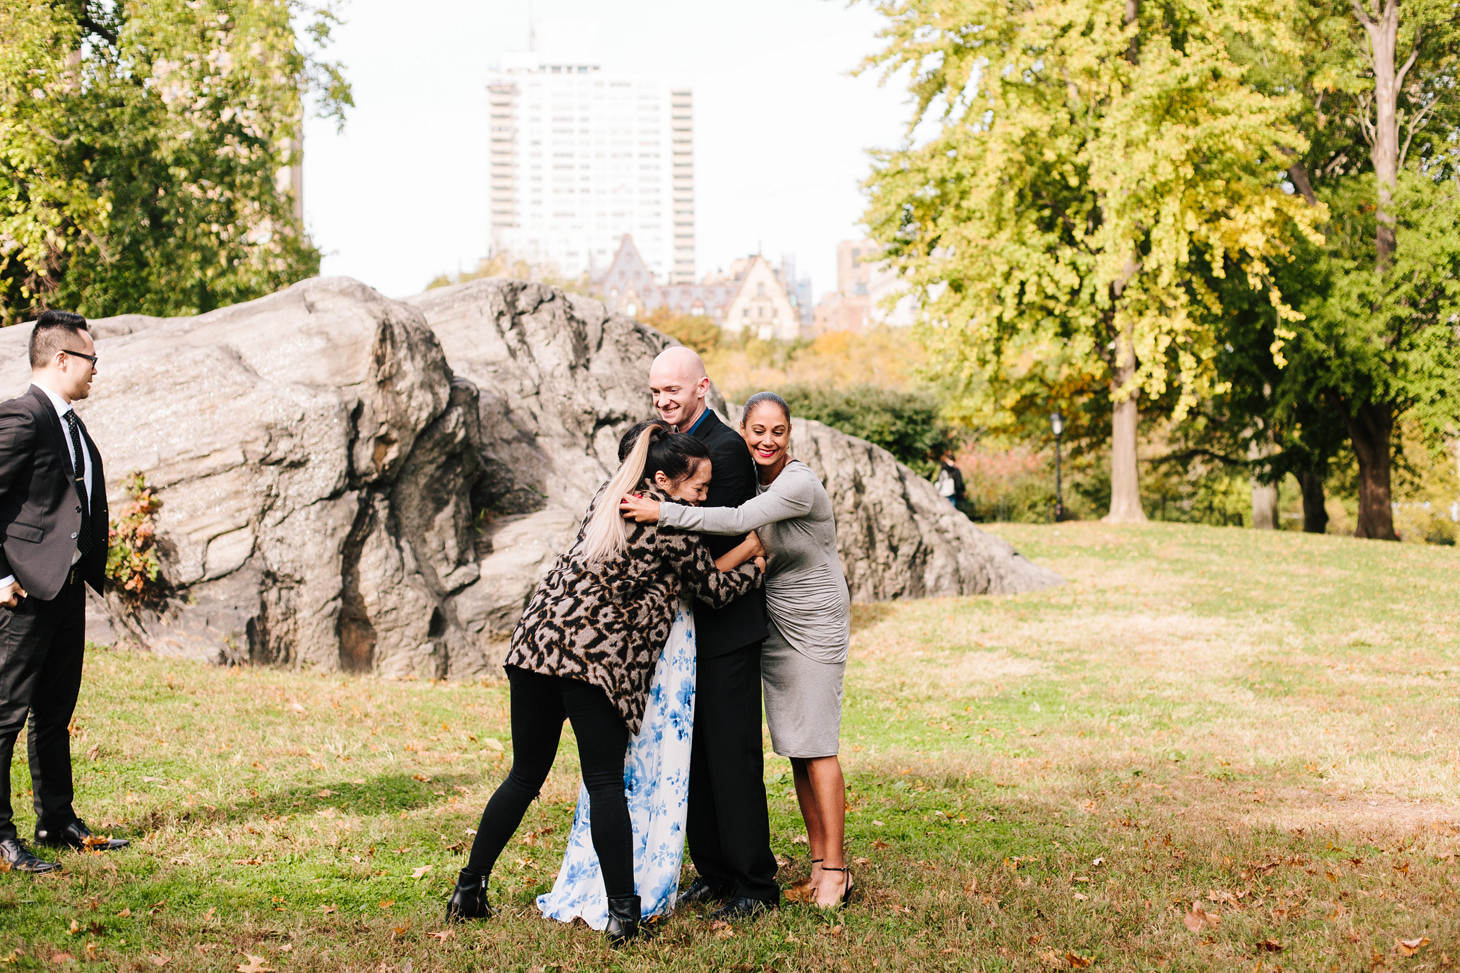 013-NYC-Elopement-Photography-SmittenChickens-Central-Park-Mandy-Sean.jpg